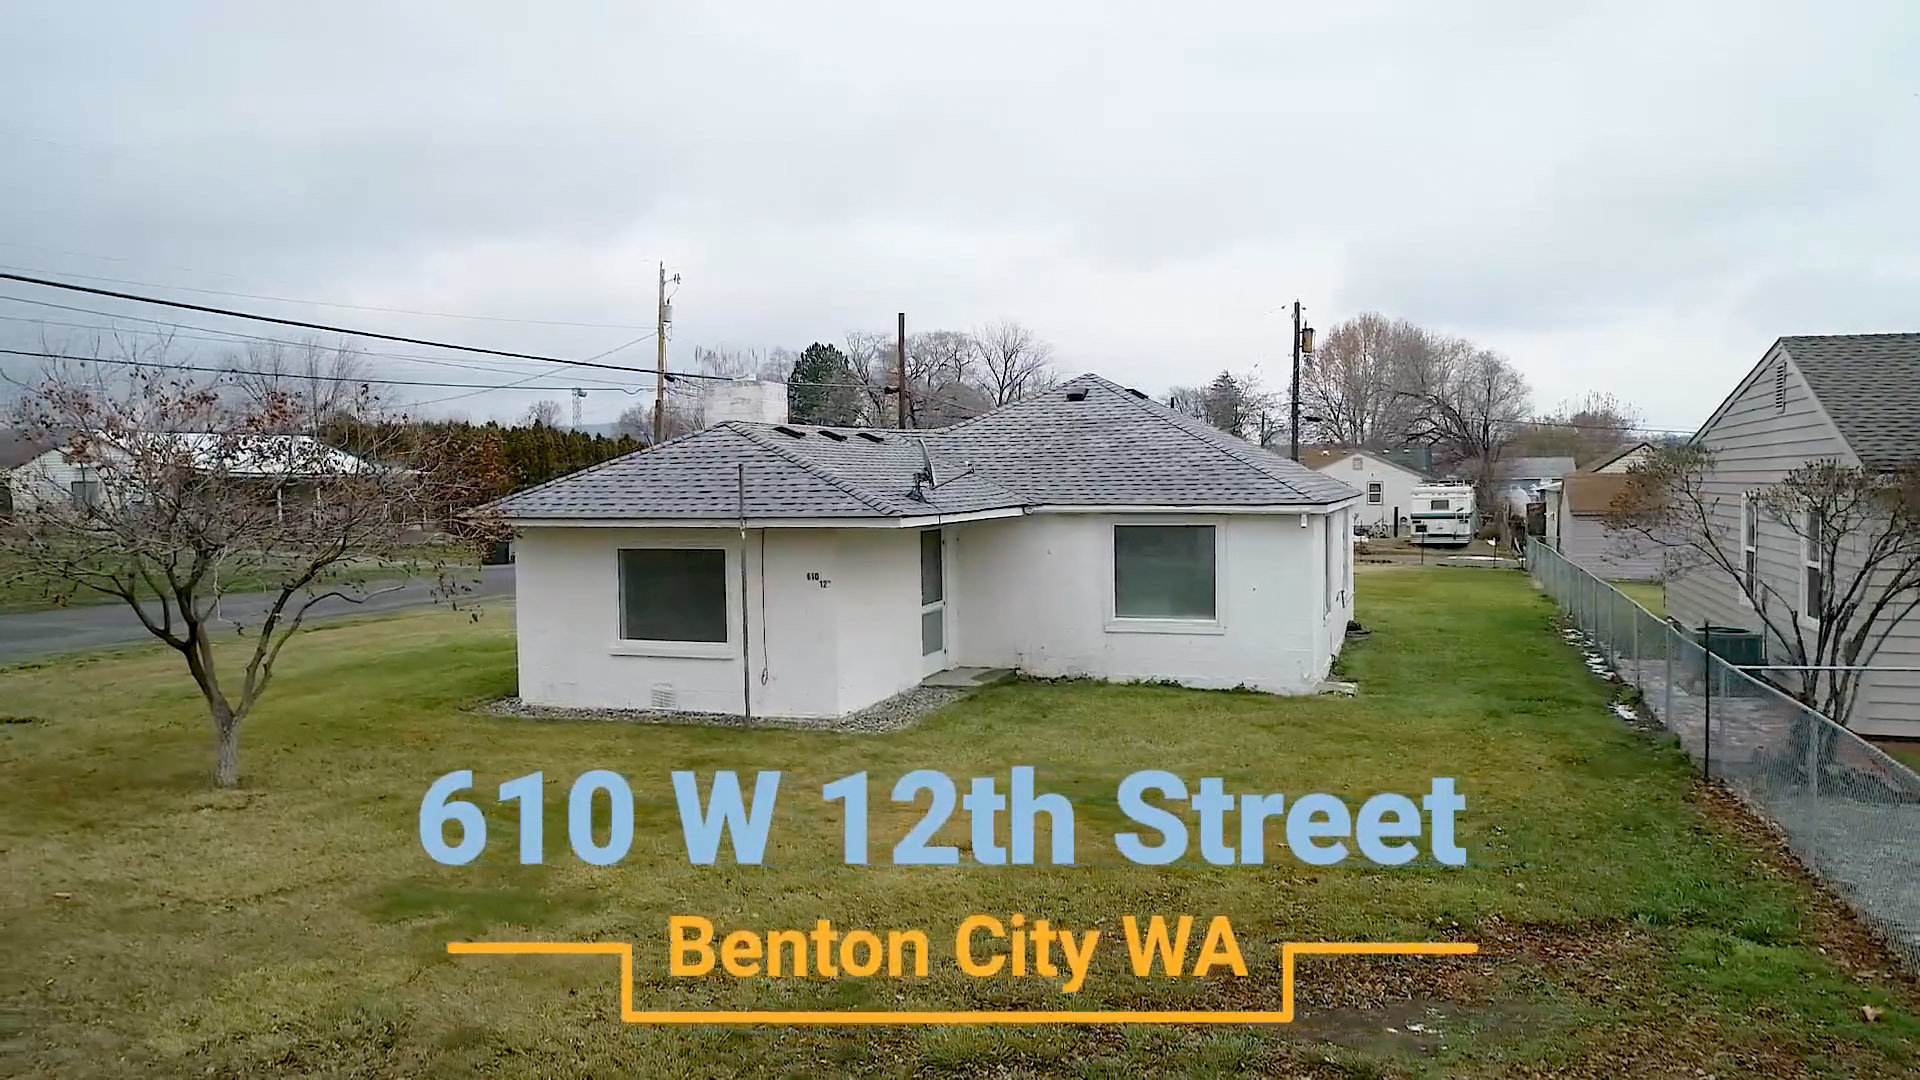 610 W 12th St, Benton City Wa 99320